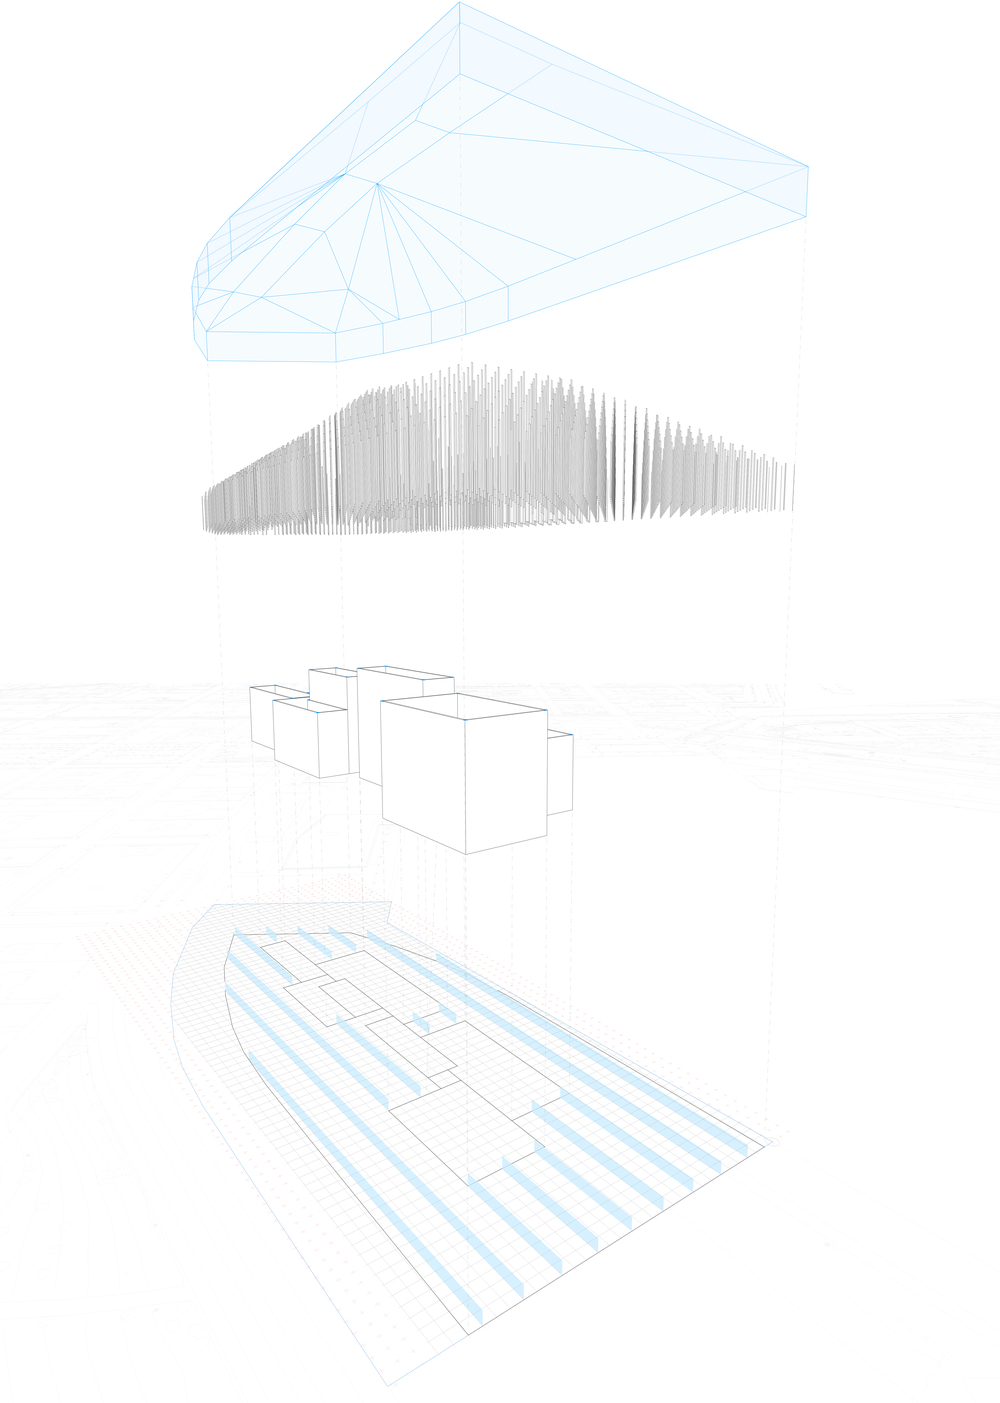 20140903_exploded_perspective.jpg